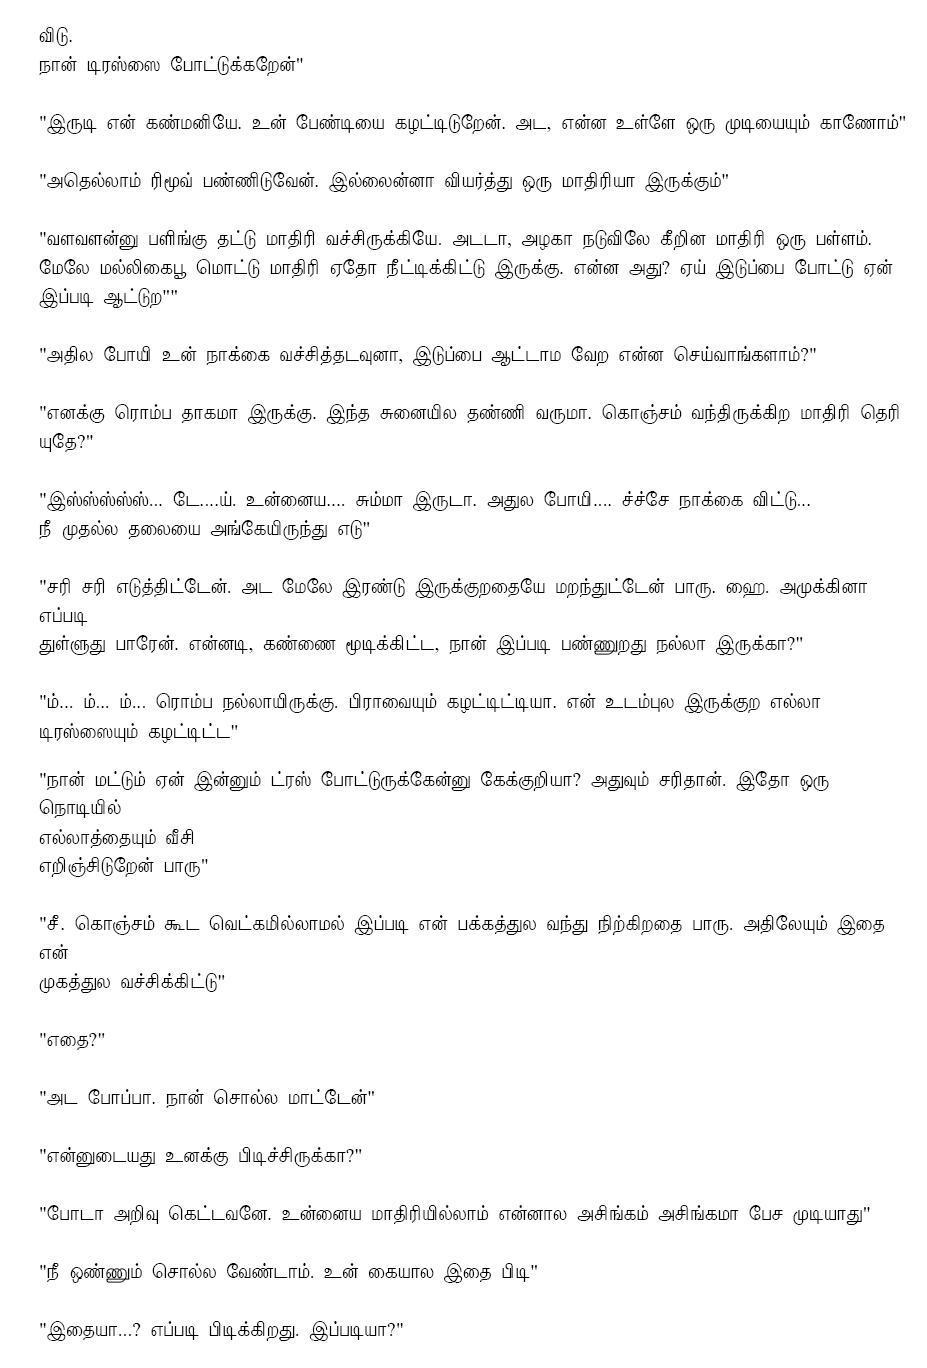 Posted on November 1, 2013 by Raja Posted in இன்பமான